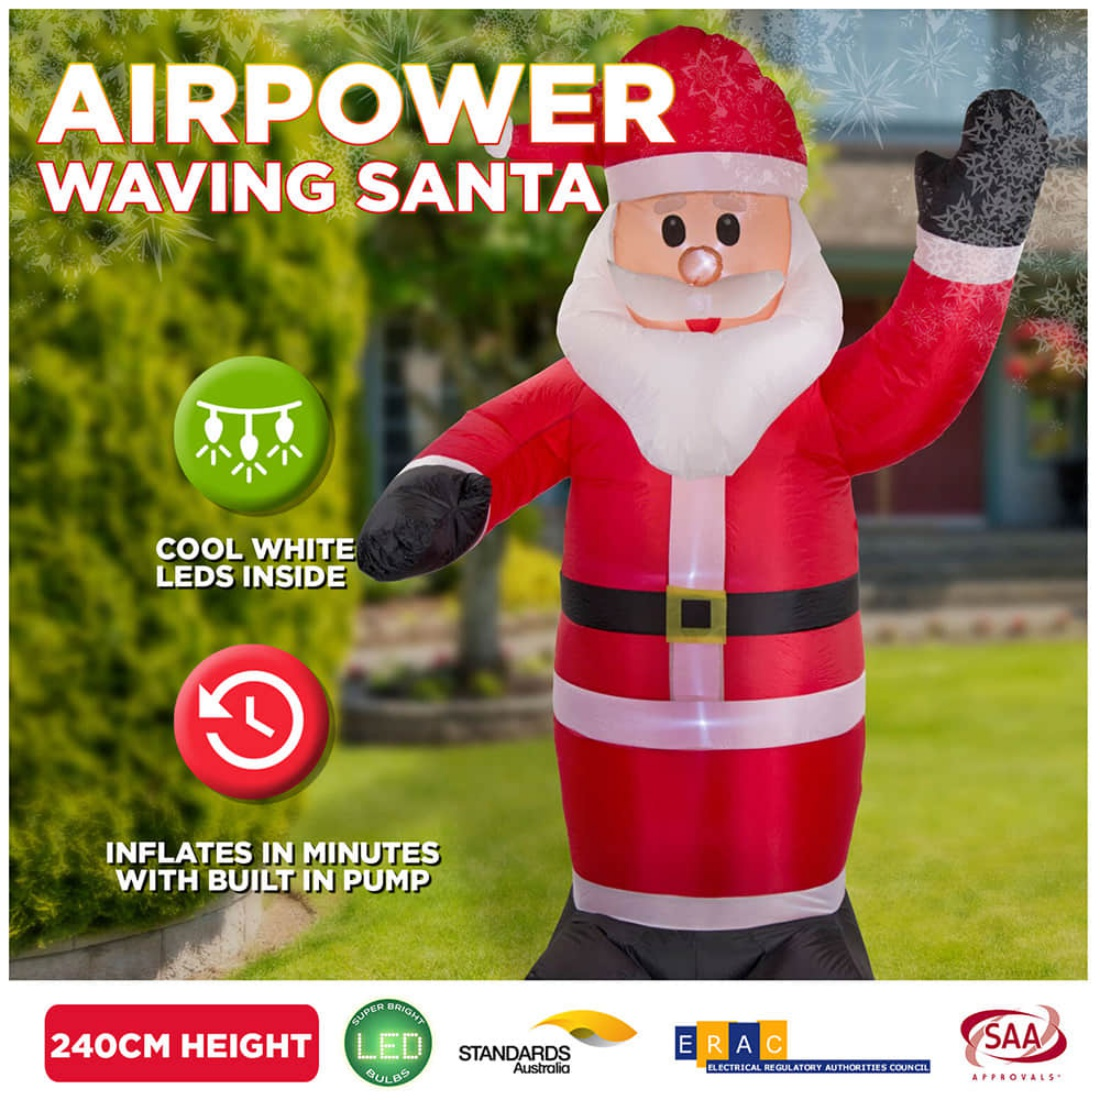 New 2.4m Inflatable Santa Wave LED Christmas Lights Outdoor Airpower Décor